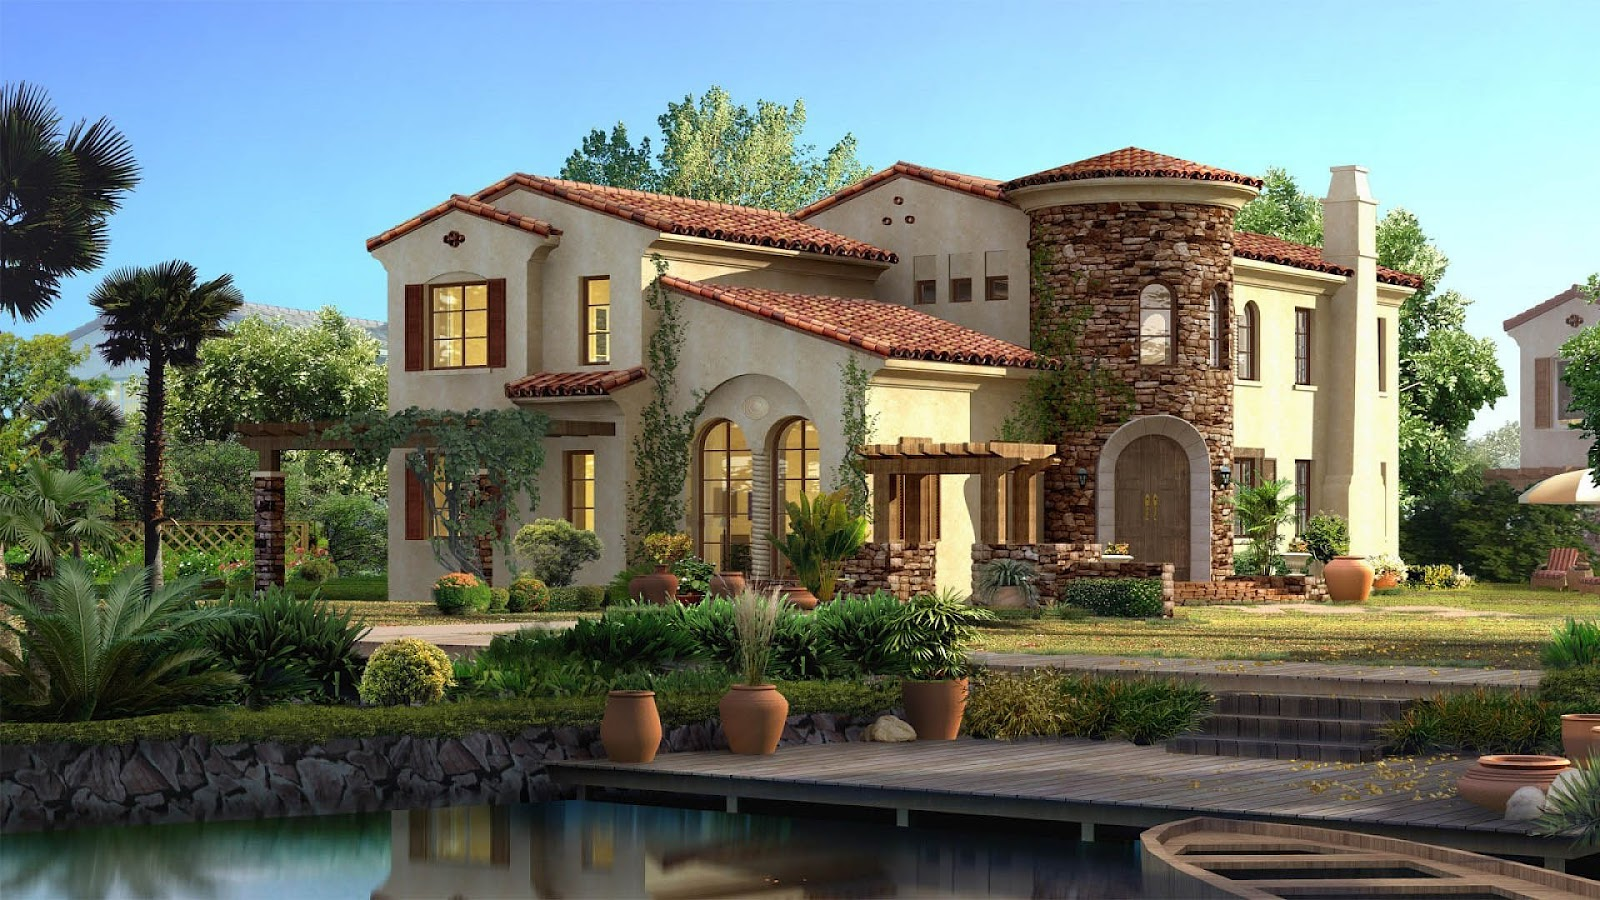 beautiful house hd wallpapers cool desktop pictures widescreen 1600x900